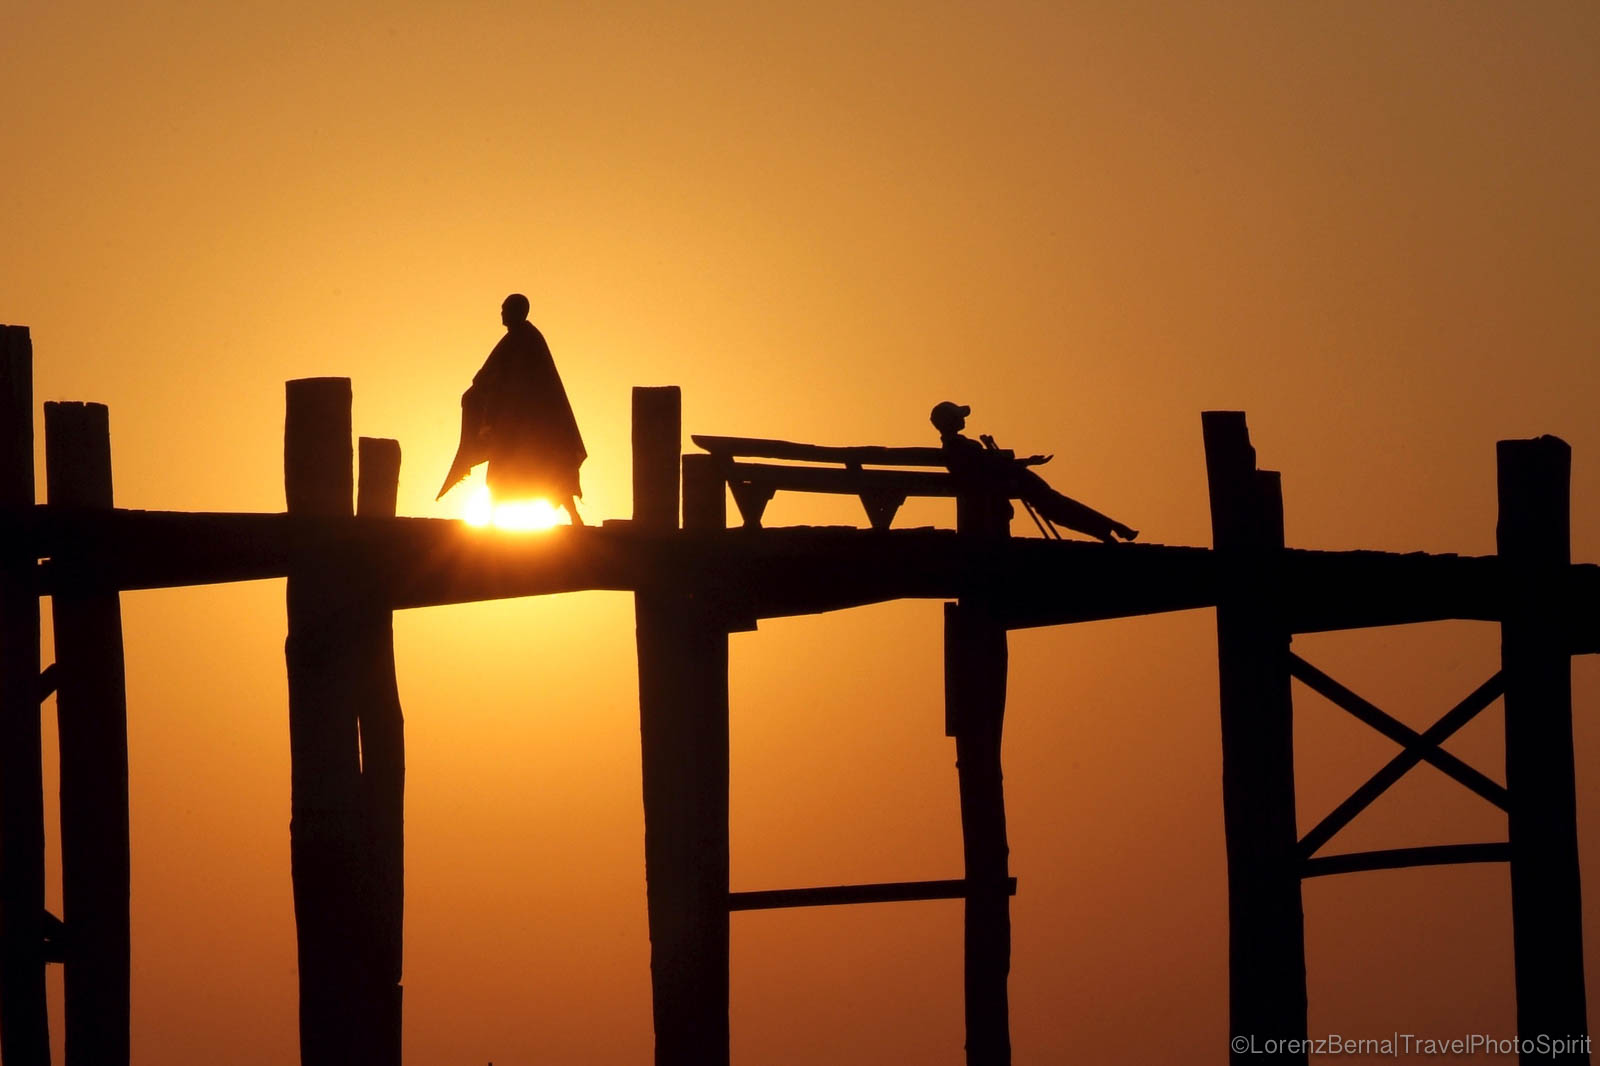 Silhouettes at sunset on the U-Bein bridge in the region of Mandalay - A Lorenz Berna Photography of Maynmar